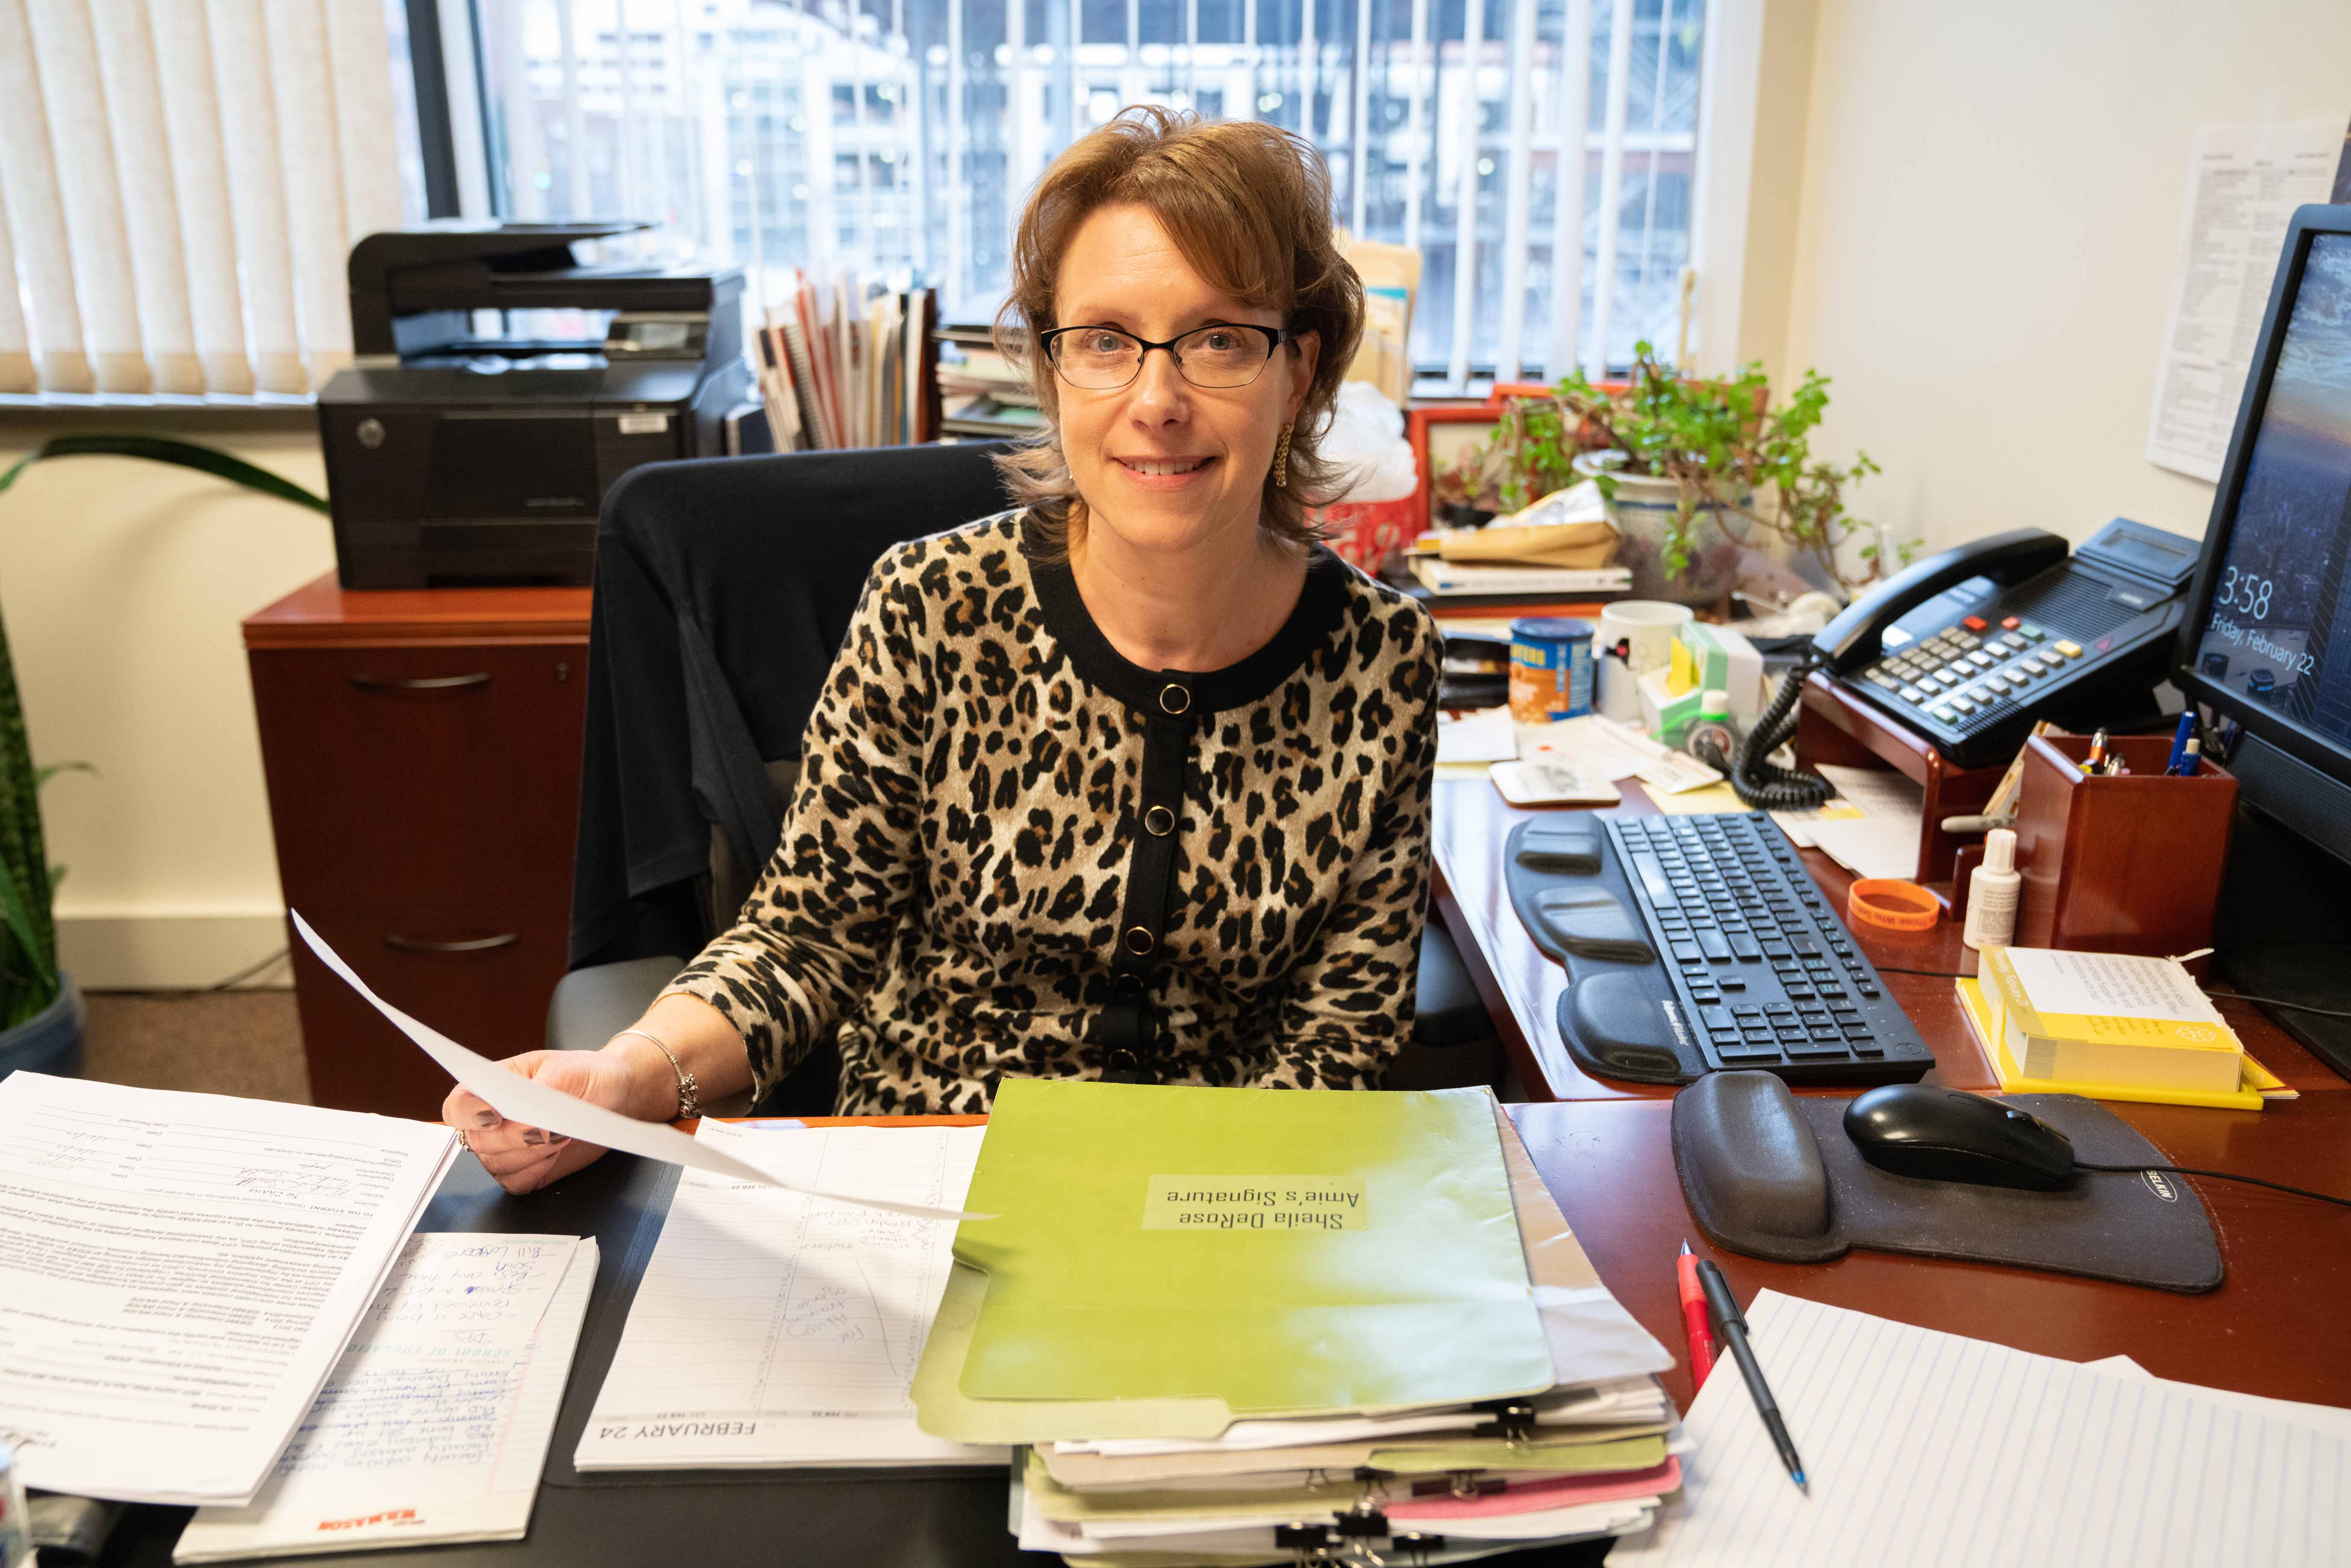 Amie Redmond at her desk, holding papers and folders